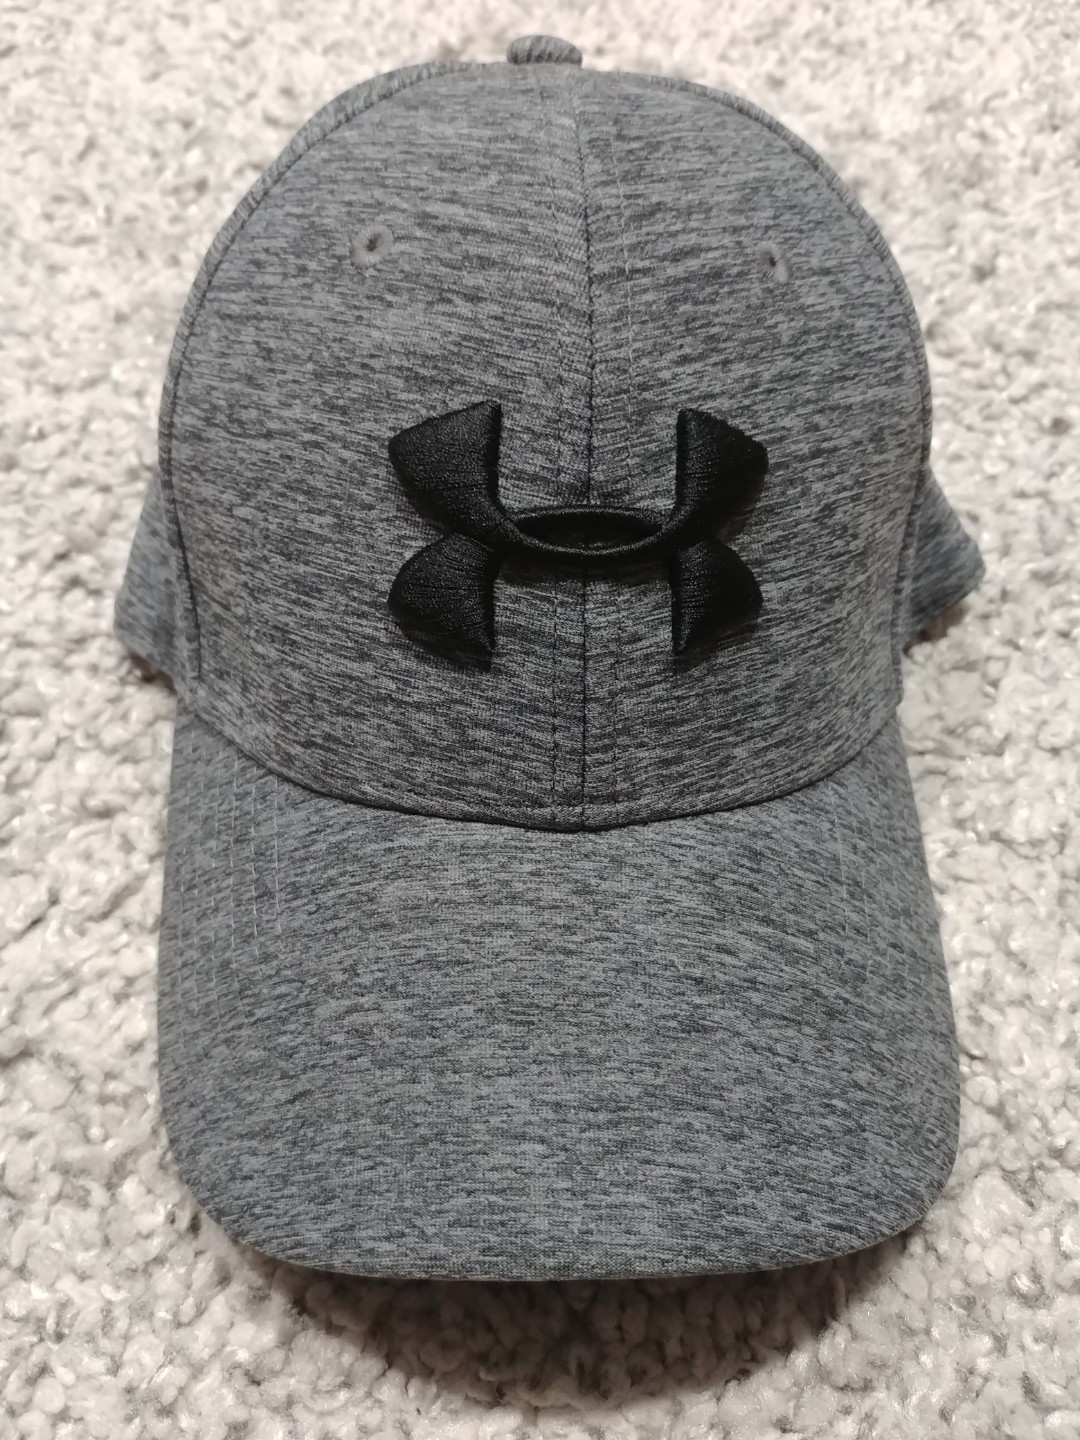 32cc52658 Under Armour Cap, Men's Fashion, Accessories, Caps & Hats on Carousell